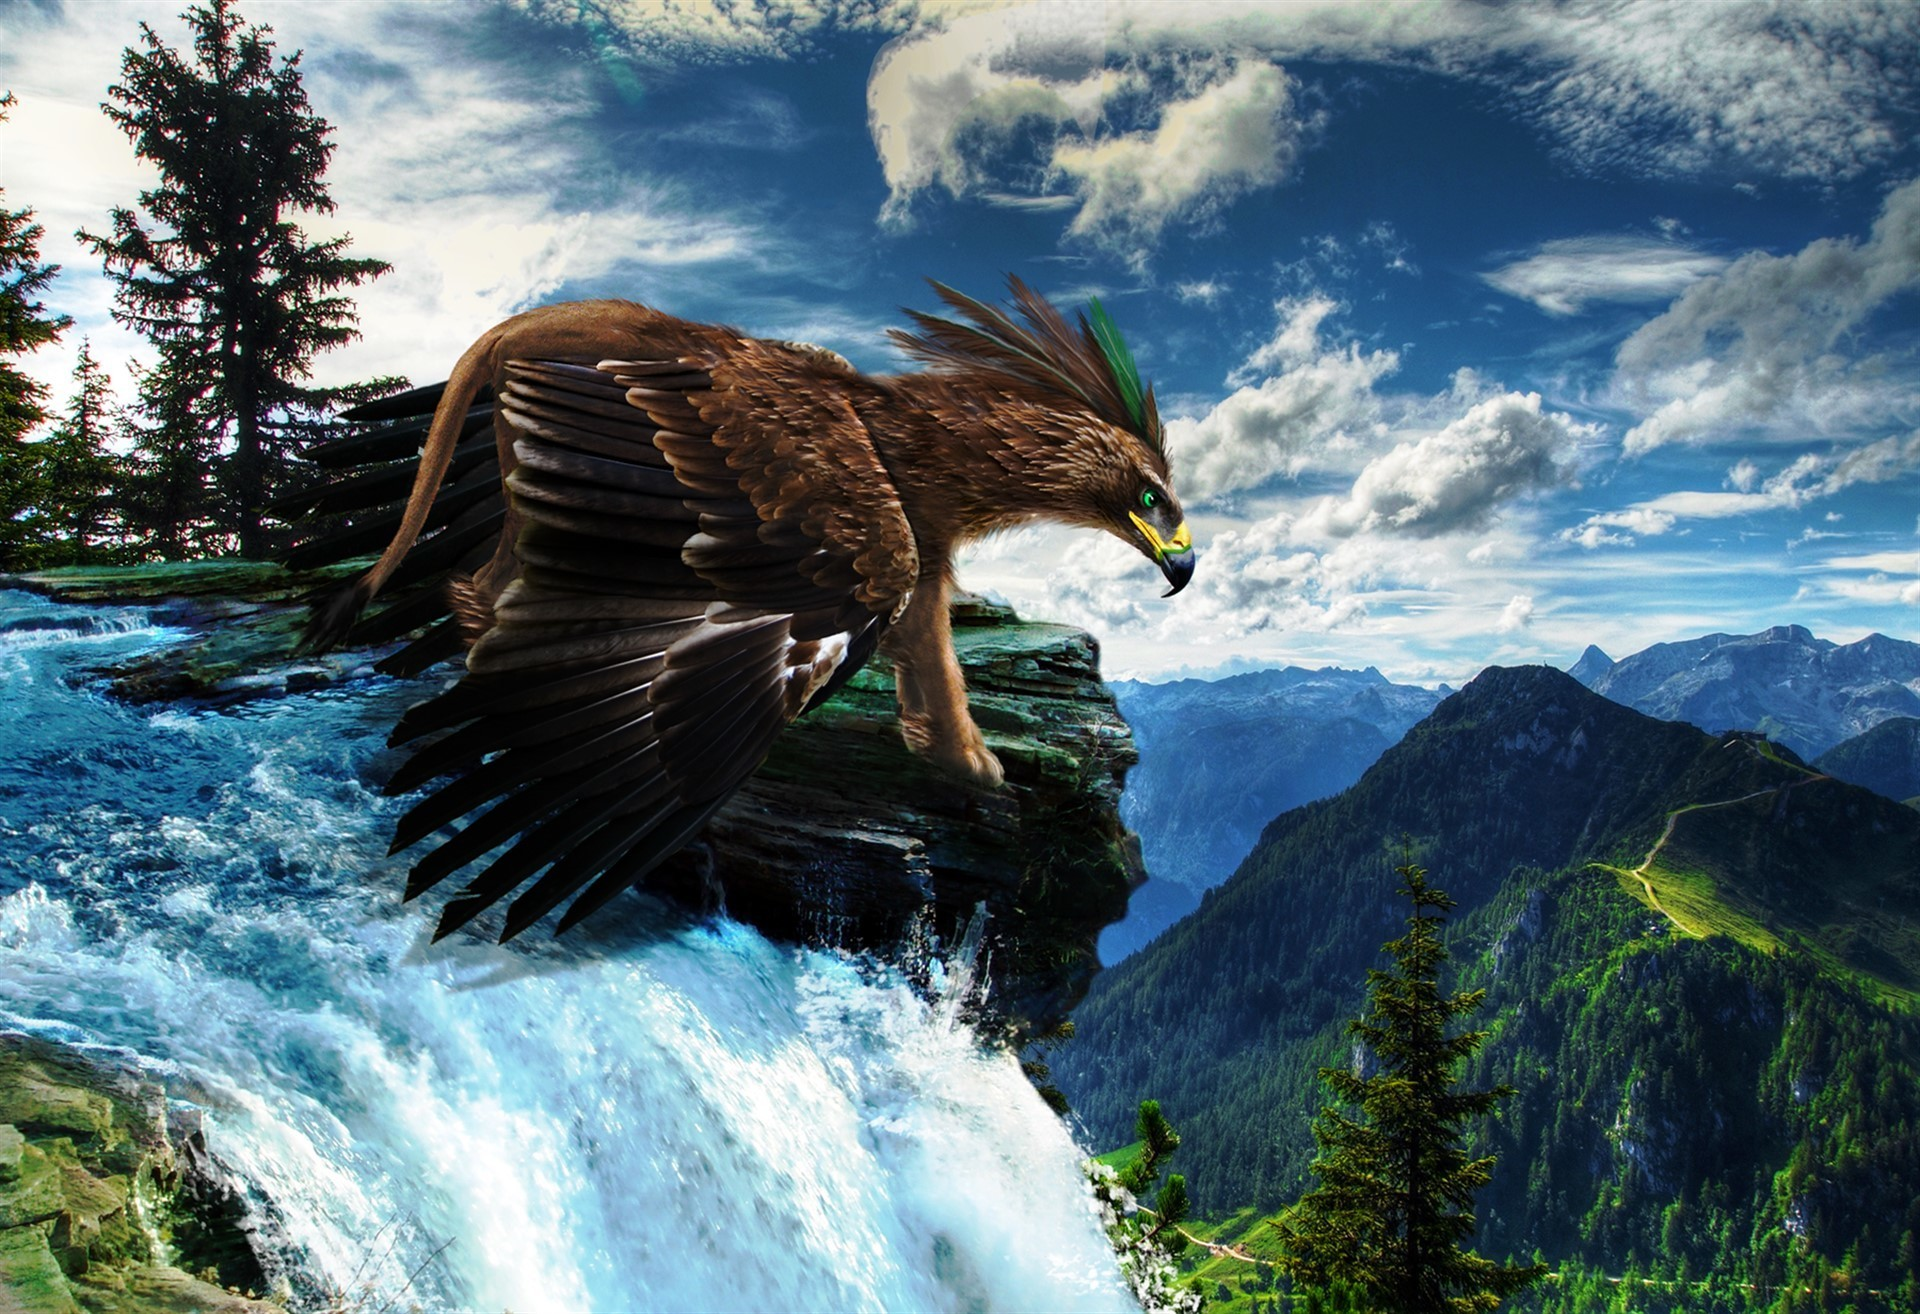 Magical Animals Scenery Waterfall Gryphon Eagle Landscape